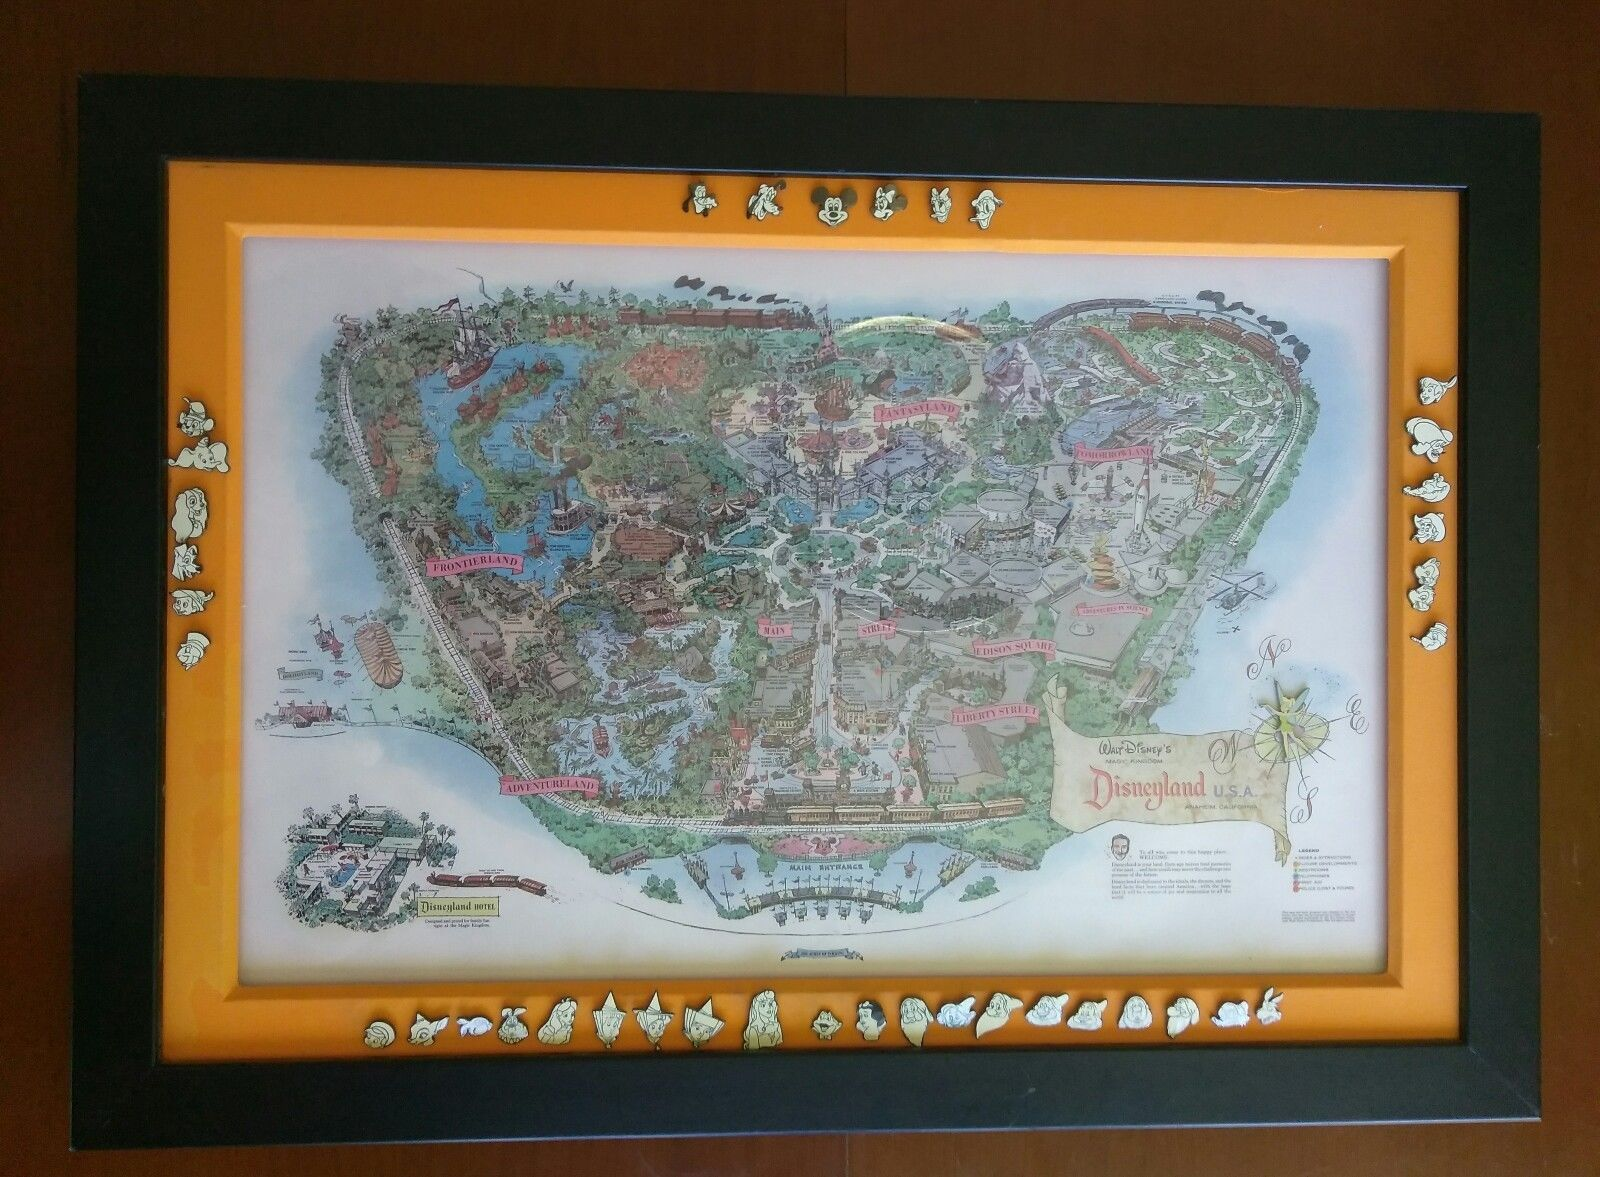 Rare disneyland 1958 souvenir pin set map le 1000 disney 50th rare disneyland 1958 souvenir pin set map le 1000 disney 50th anniversary ebay gumiabroncs Image collections